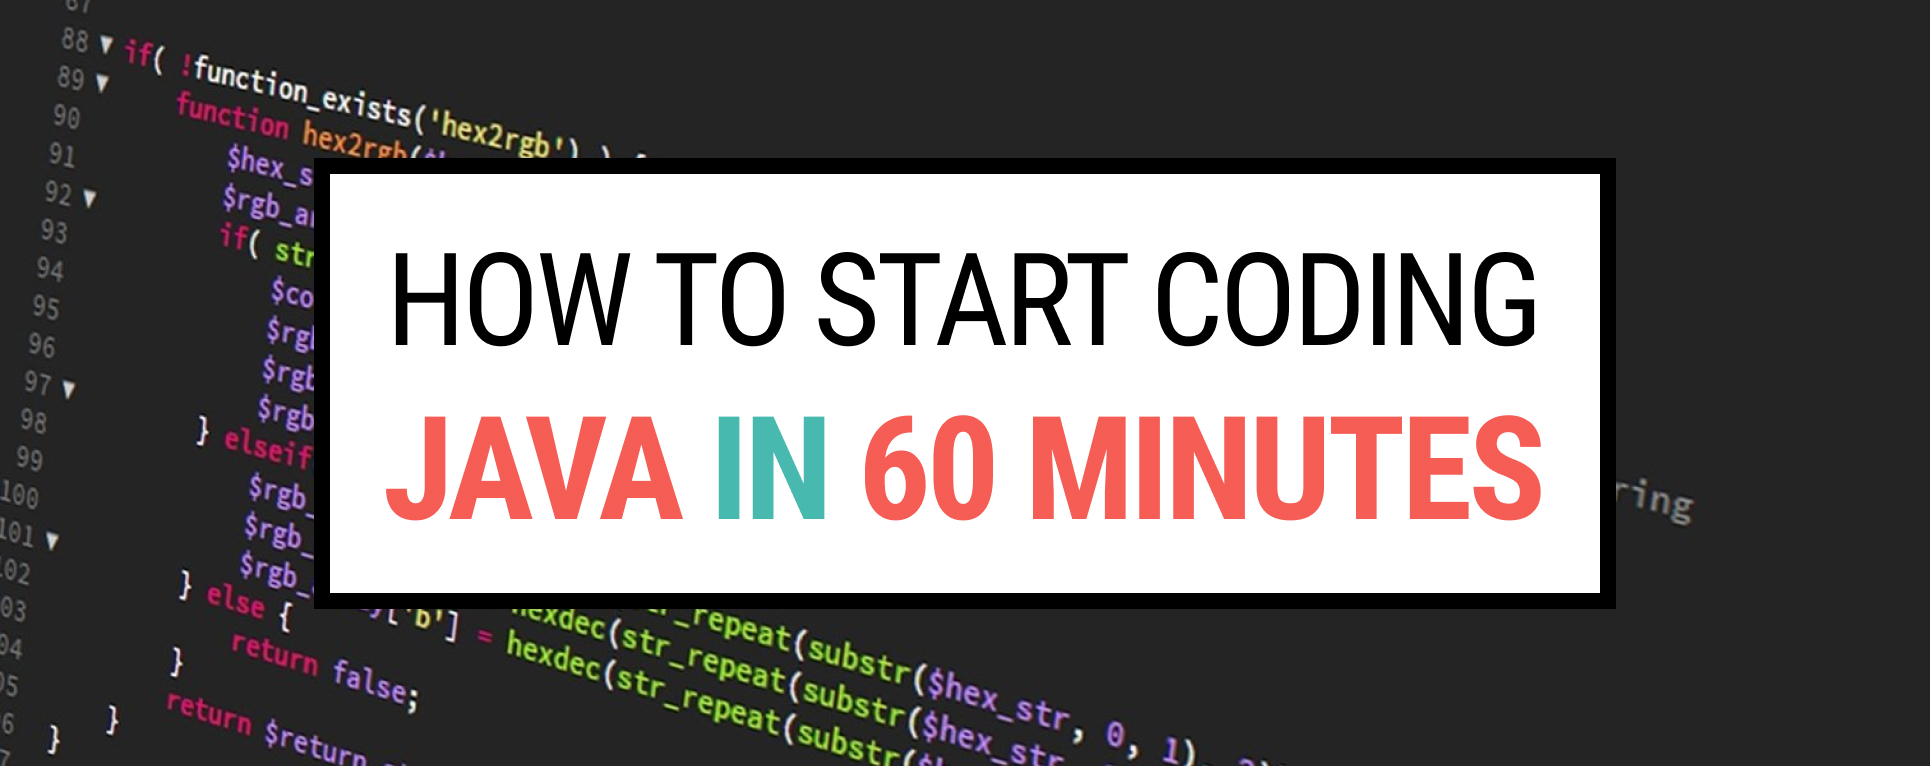 How to start coding Java in 60 minutes